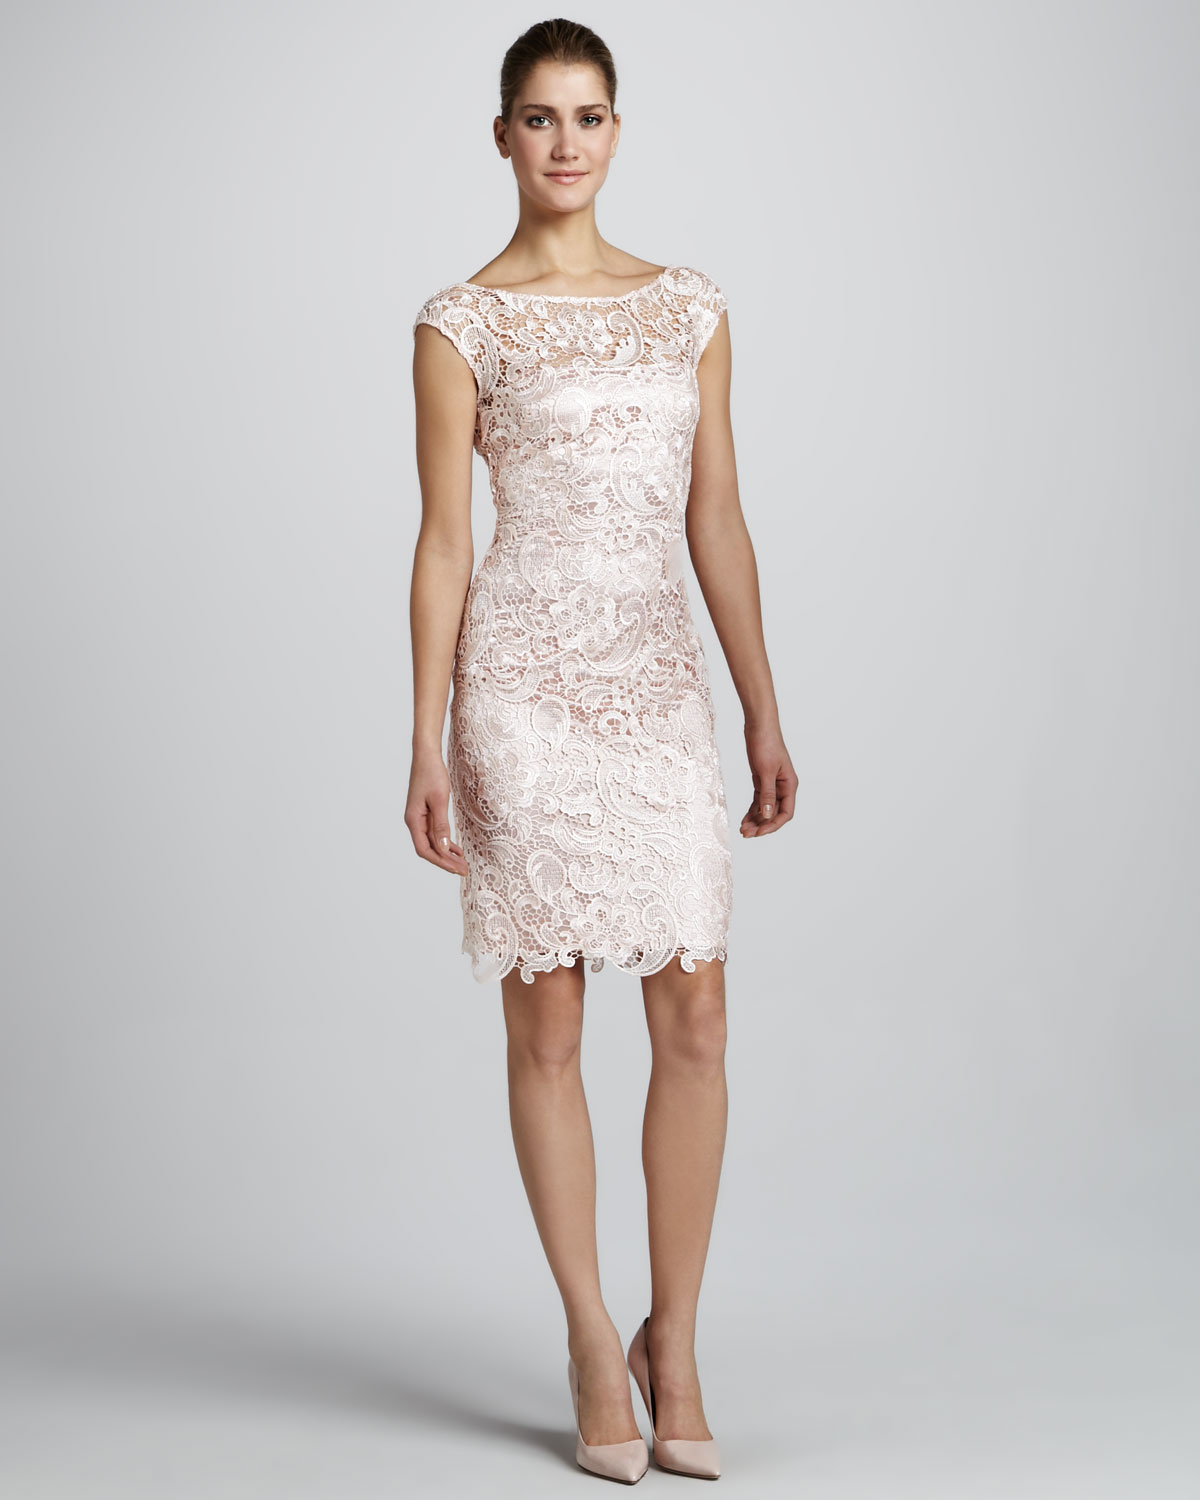 Ml monique lhuillier Capsleeve Lace Cocktail Dress in Natural | Lyst